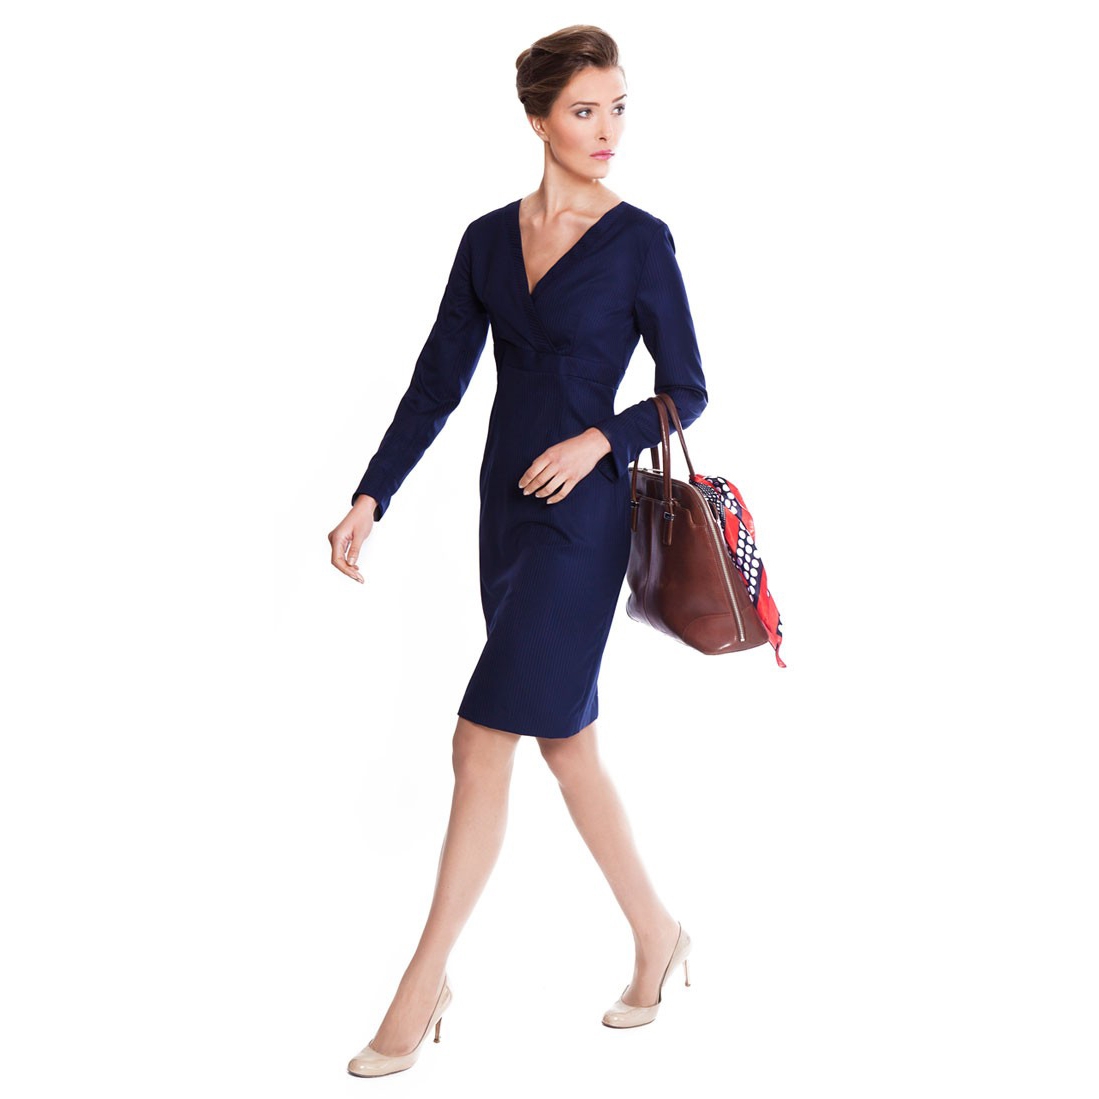 Brilliant  Dress Suits From Women39s Clothing Amp Accessories On Aliexpresscom